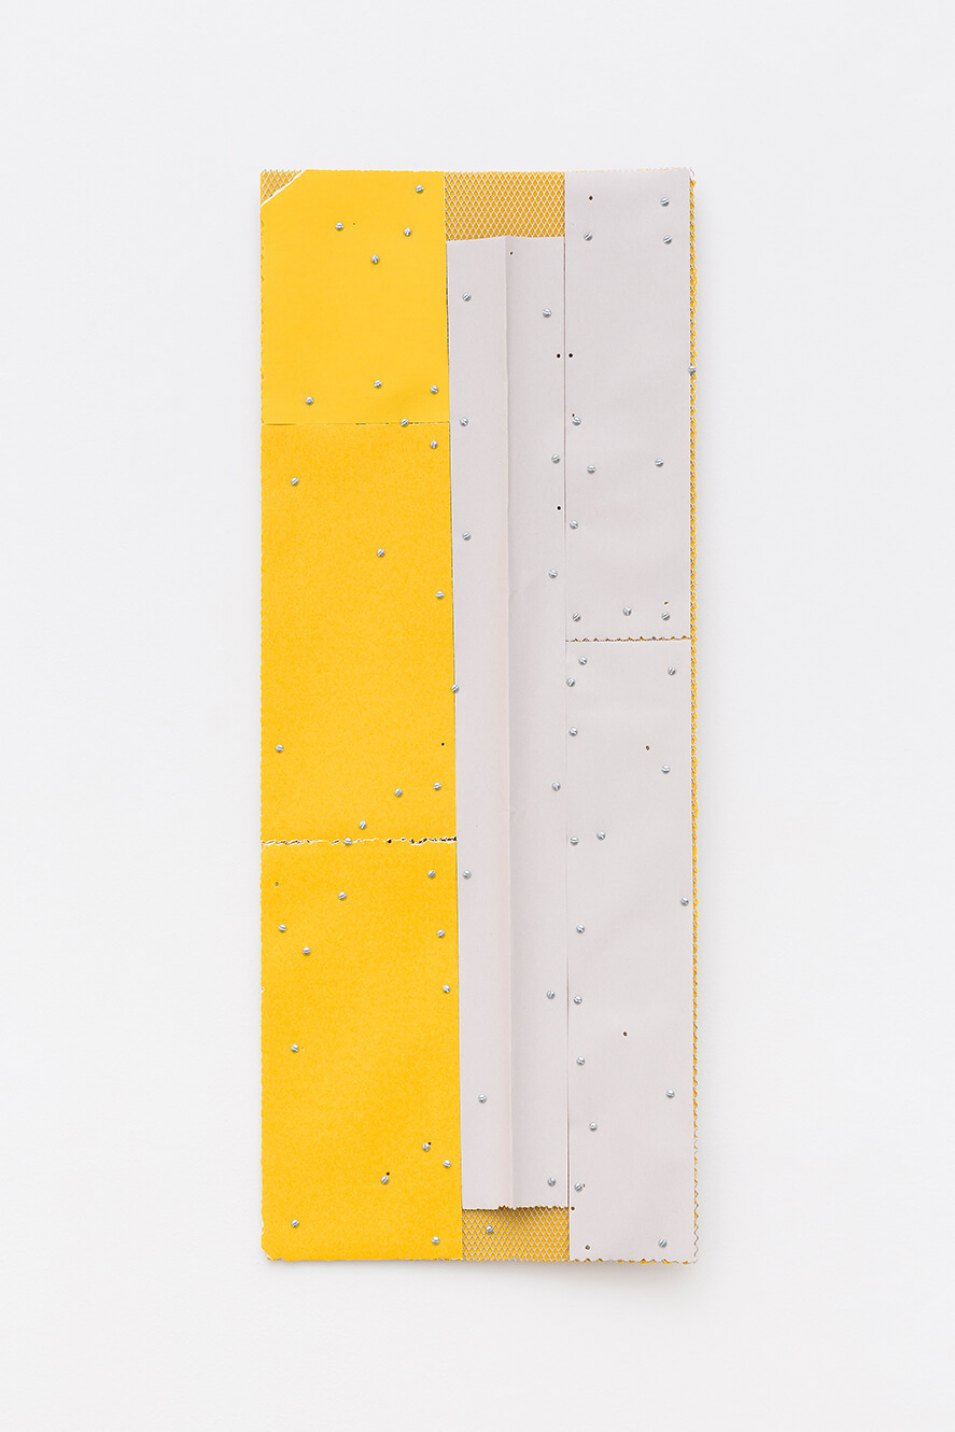 Alessandro Carano, White Line, 2017, collage: sandpaper, grid of aluminum and screw, 100 × 40 cm - Mendes Wood DM